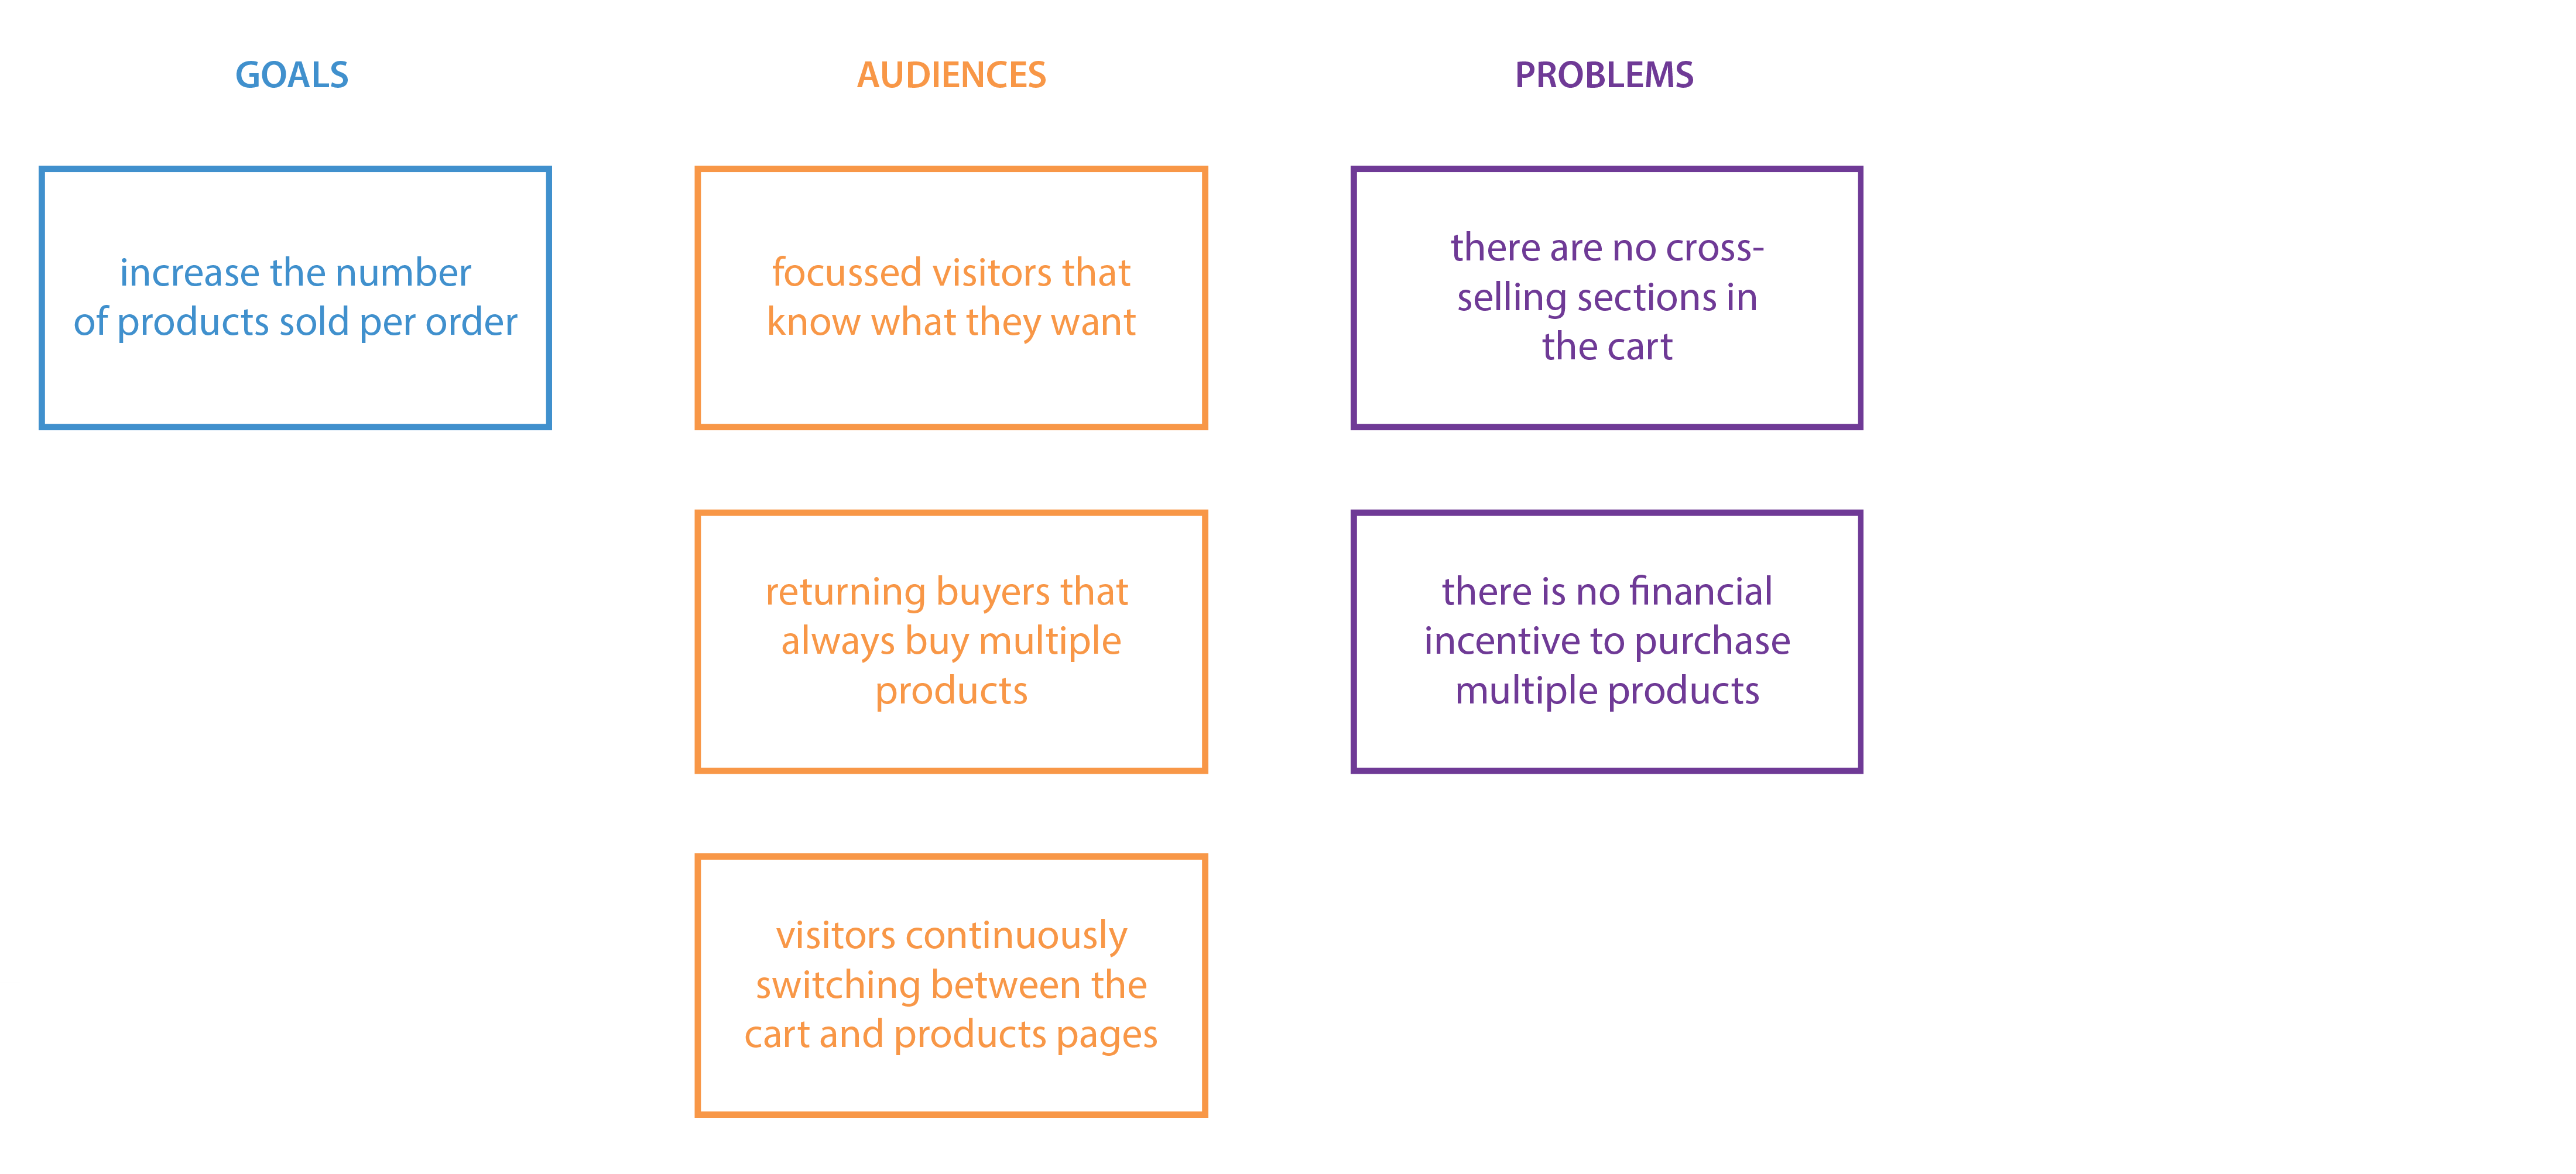 what problems do your audiences run into